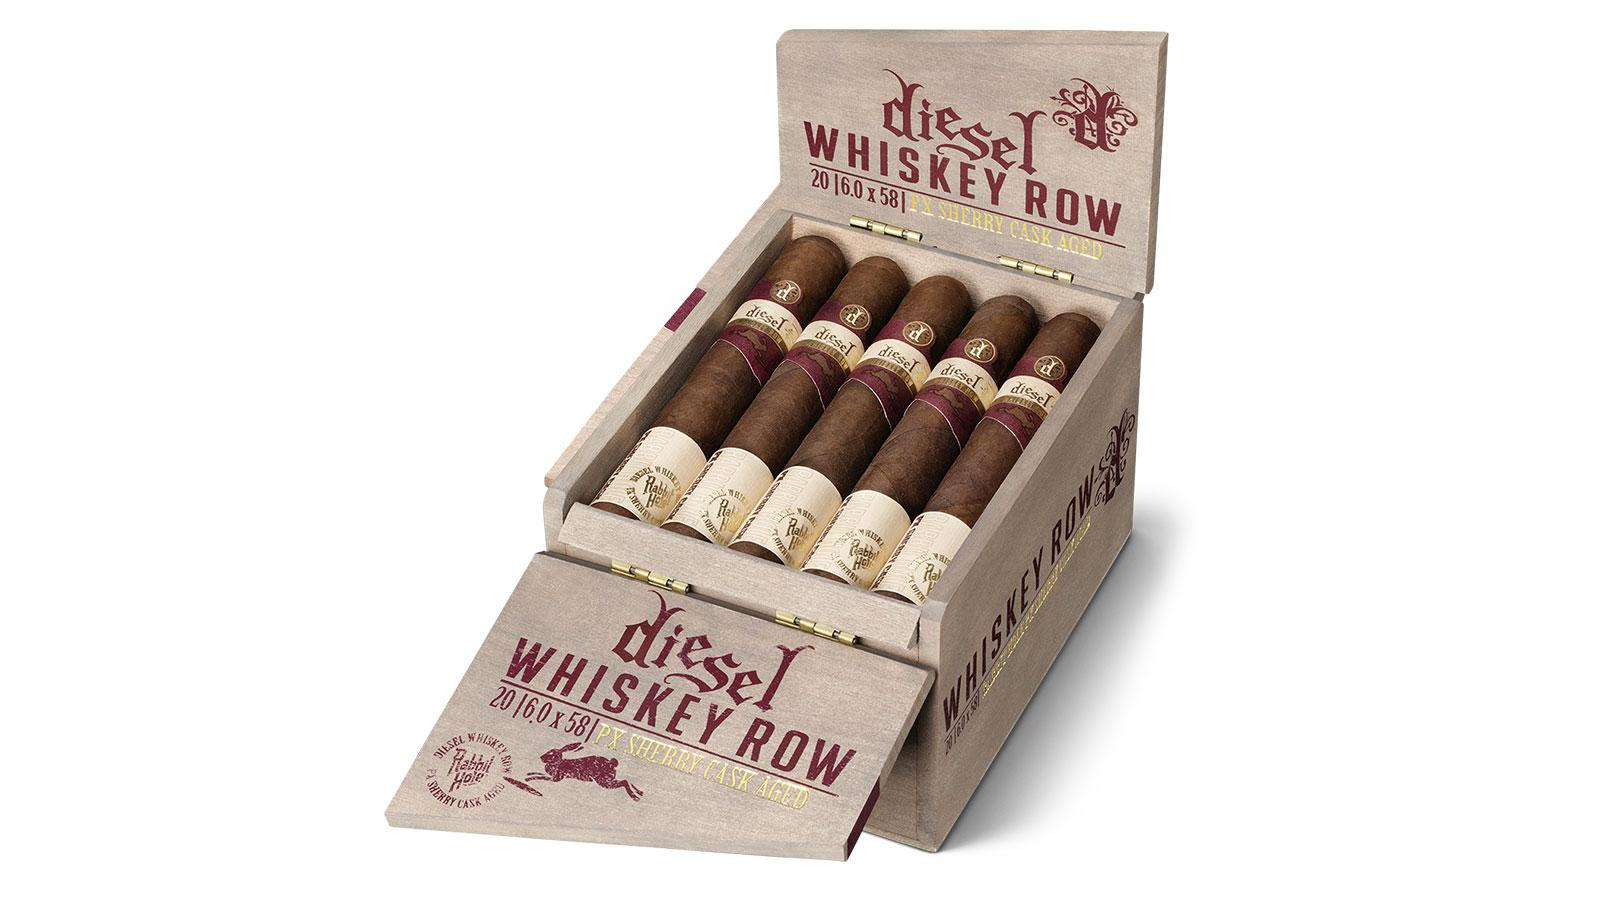 Diesel Whiskey Row Sherry Cask Coming In June